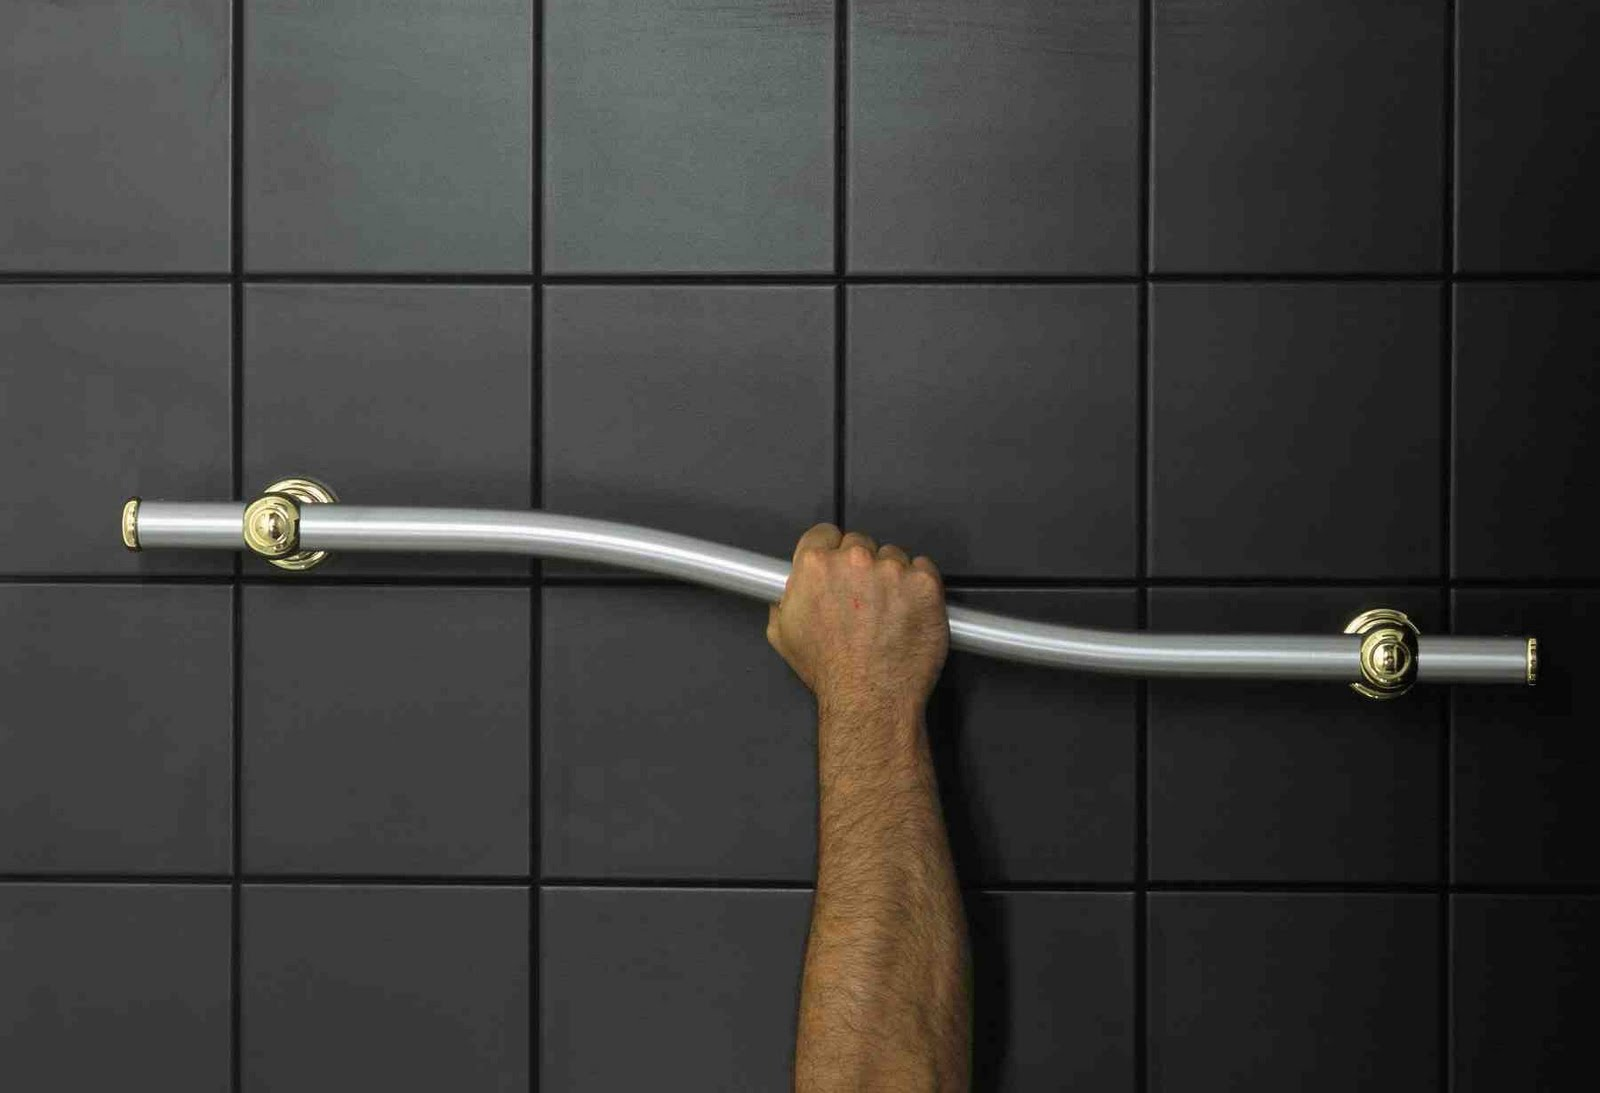 Remodel With Abbie Joan Does Your Grab Bar Selection Compromise Your Bathroom Design